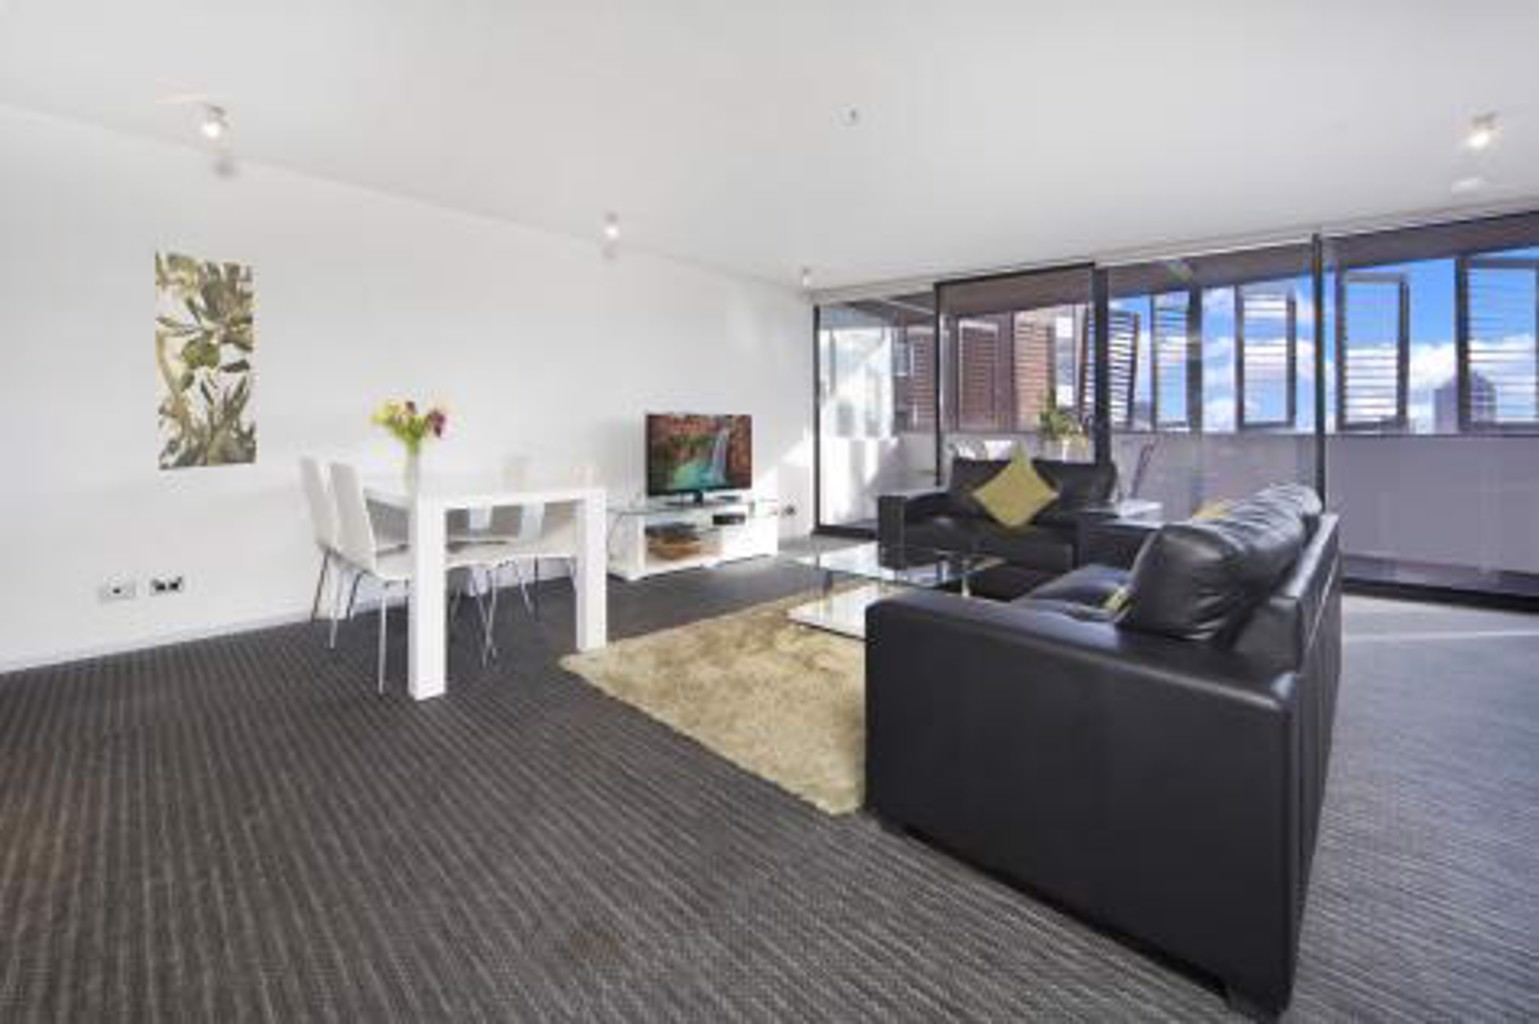 Astra Apartments Surry Hills Sydney